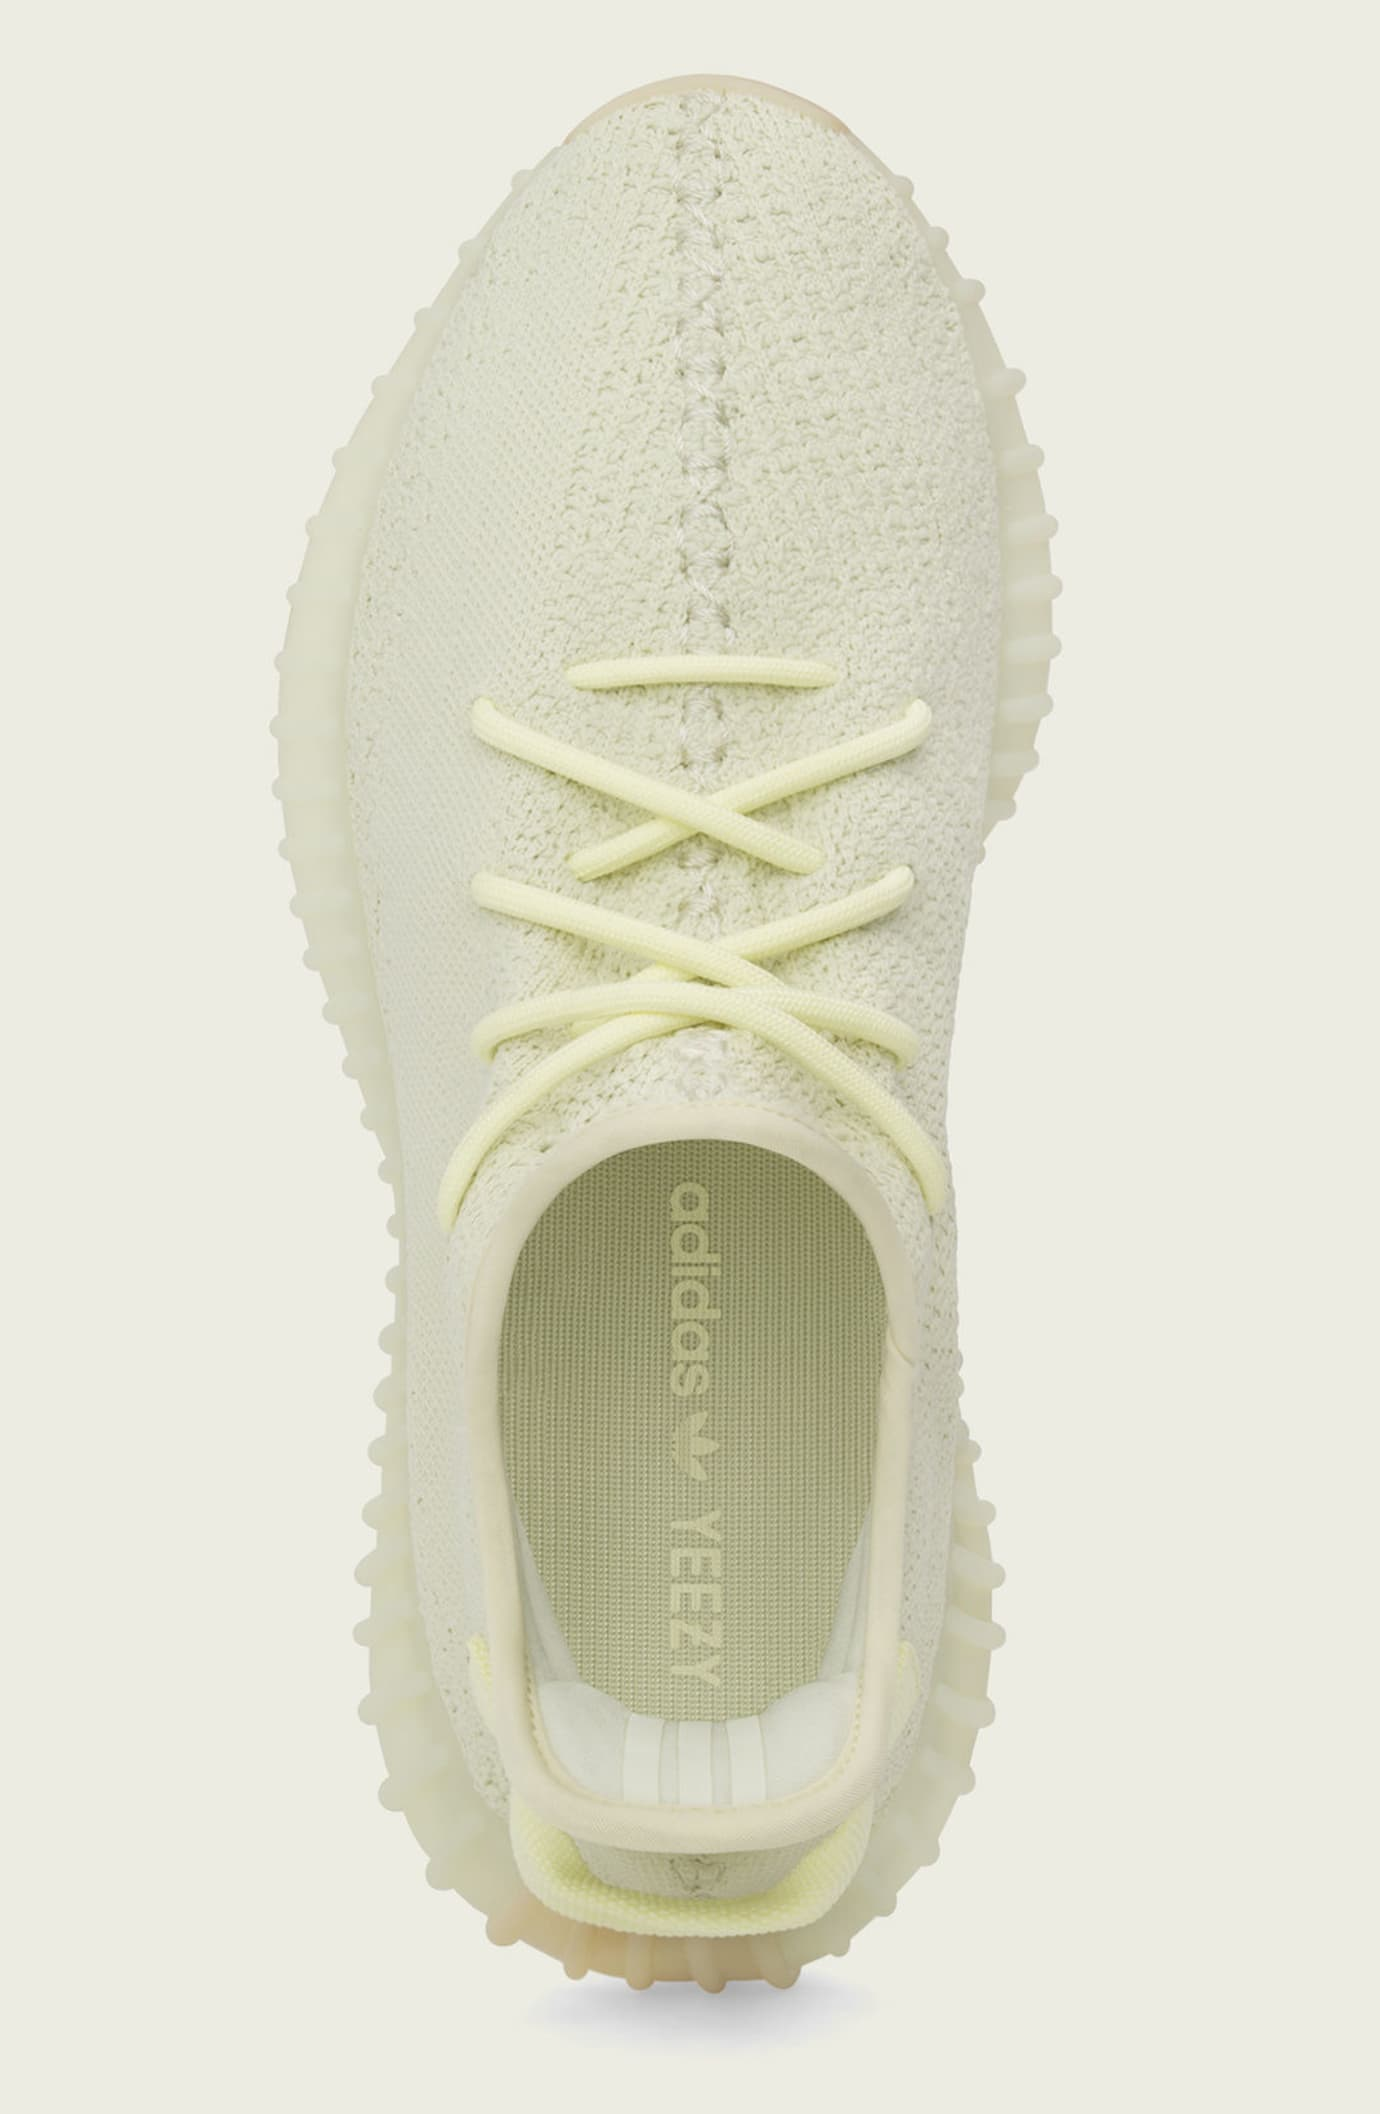 071204879 Adidas Yeezy Boost 350 V 2 Butter Release Date F36980